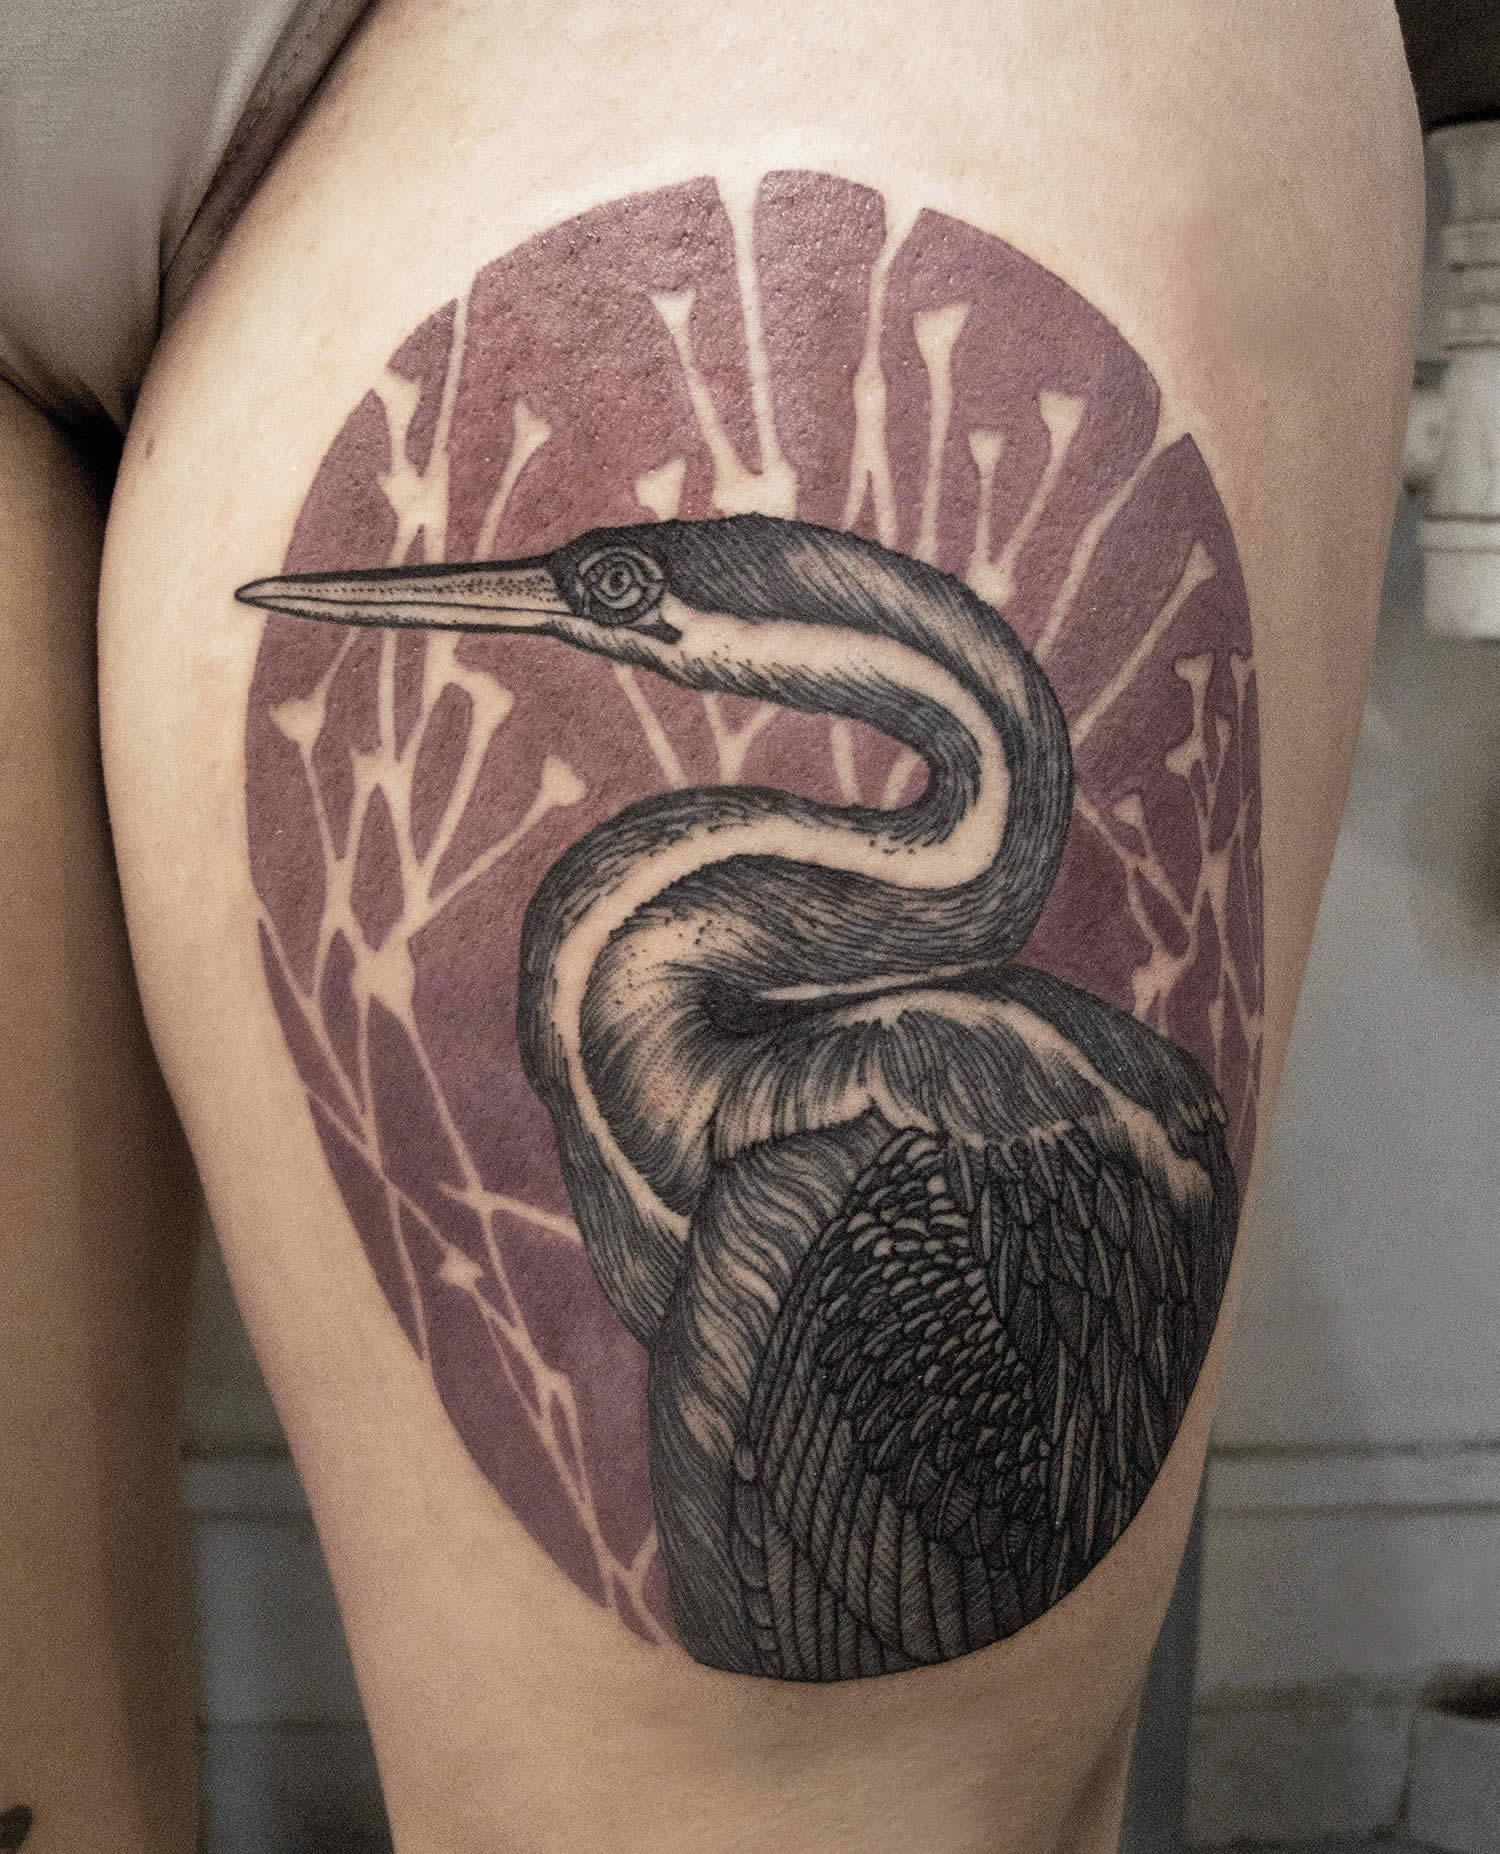 bird tattoo, illustration style